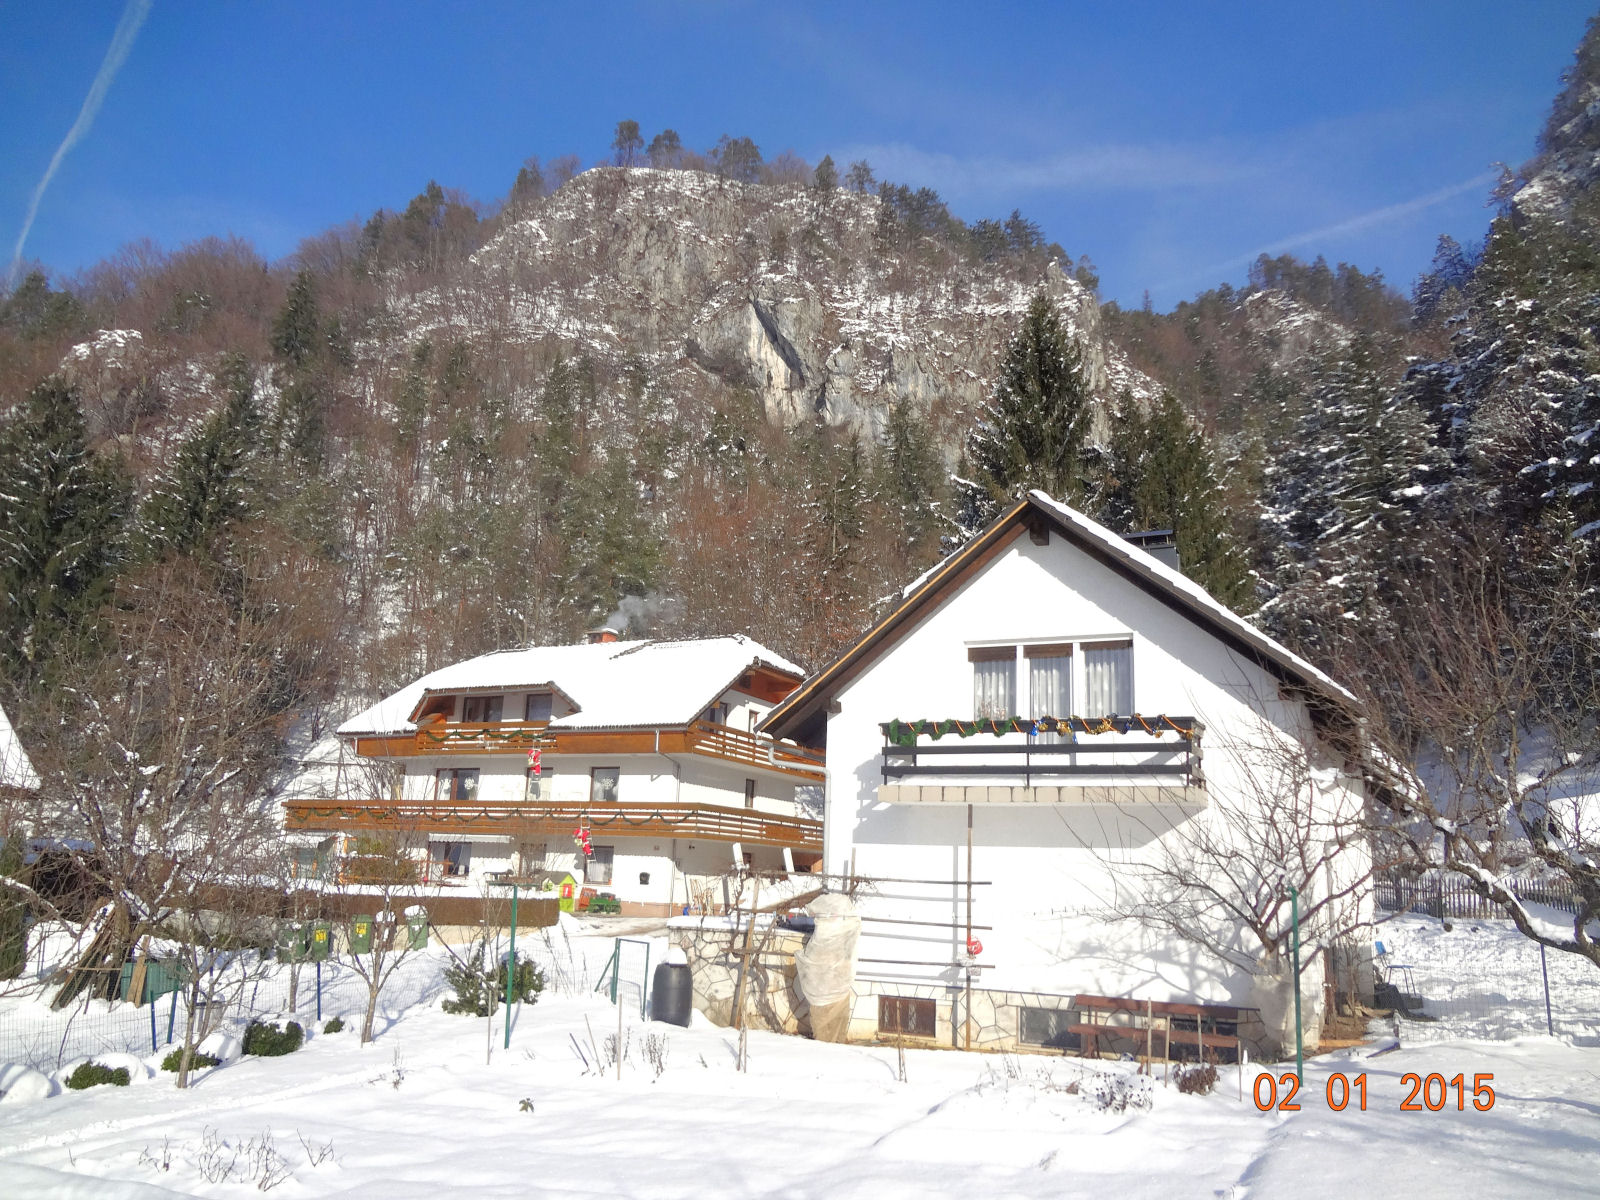 Holiday apartments in Slovenia with snow